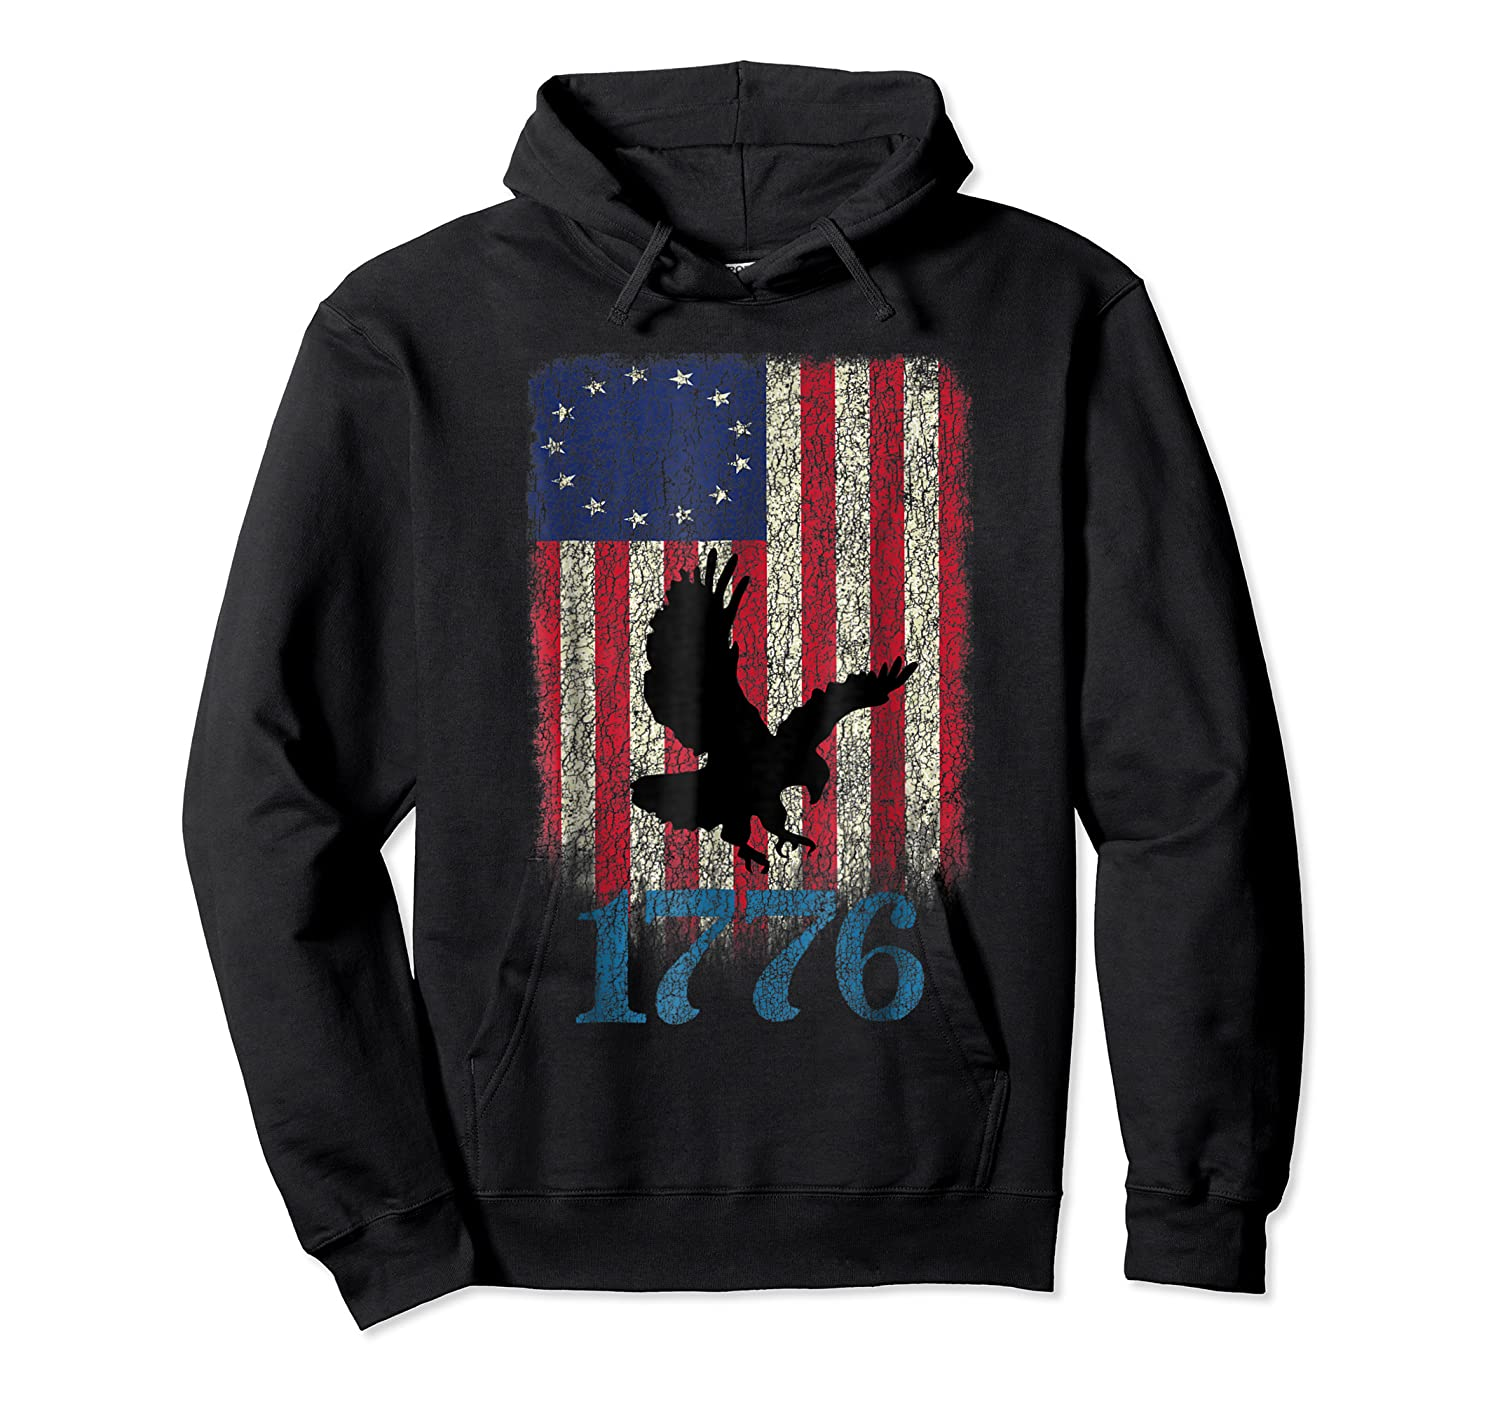 Betsy Ross Shirt 4th Of July American Flag Tshirt 1776 Eagle Unisex Pullover Hoodie